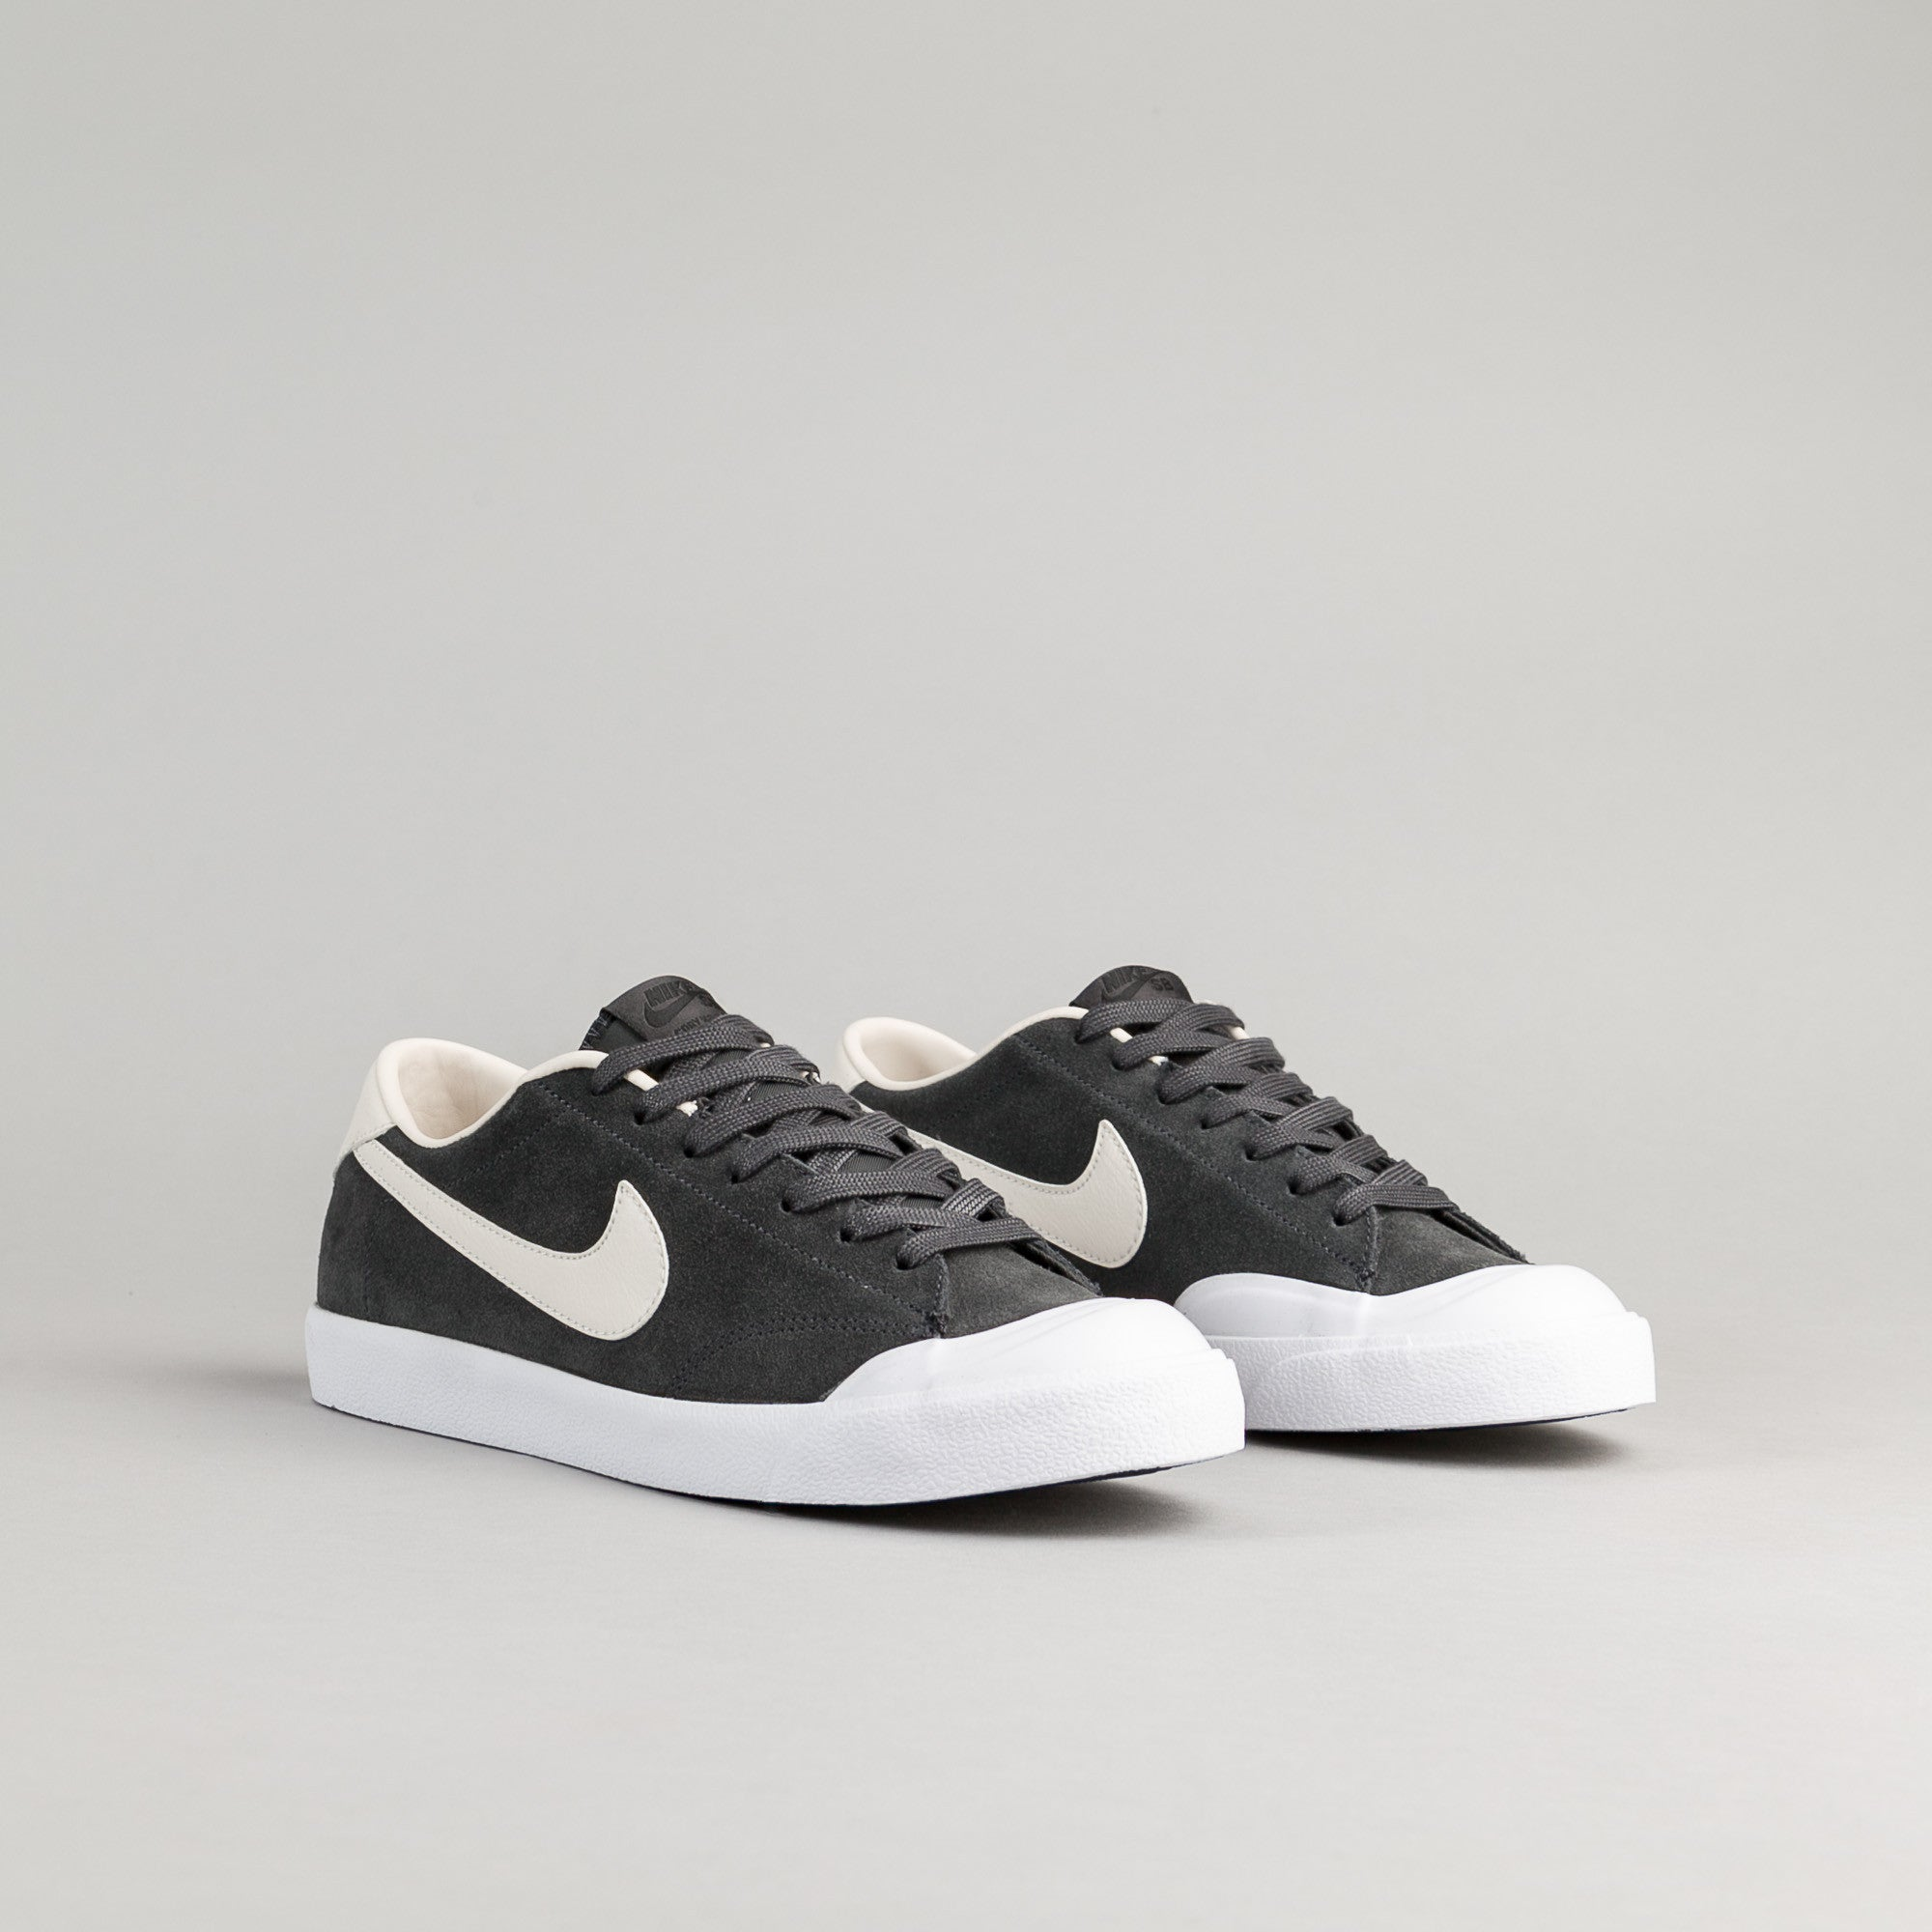 separation shoes 8046d 1fb8d ... Nike SB All Court CK Shoes - Anthracite   Phantom - White - Black ...